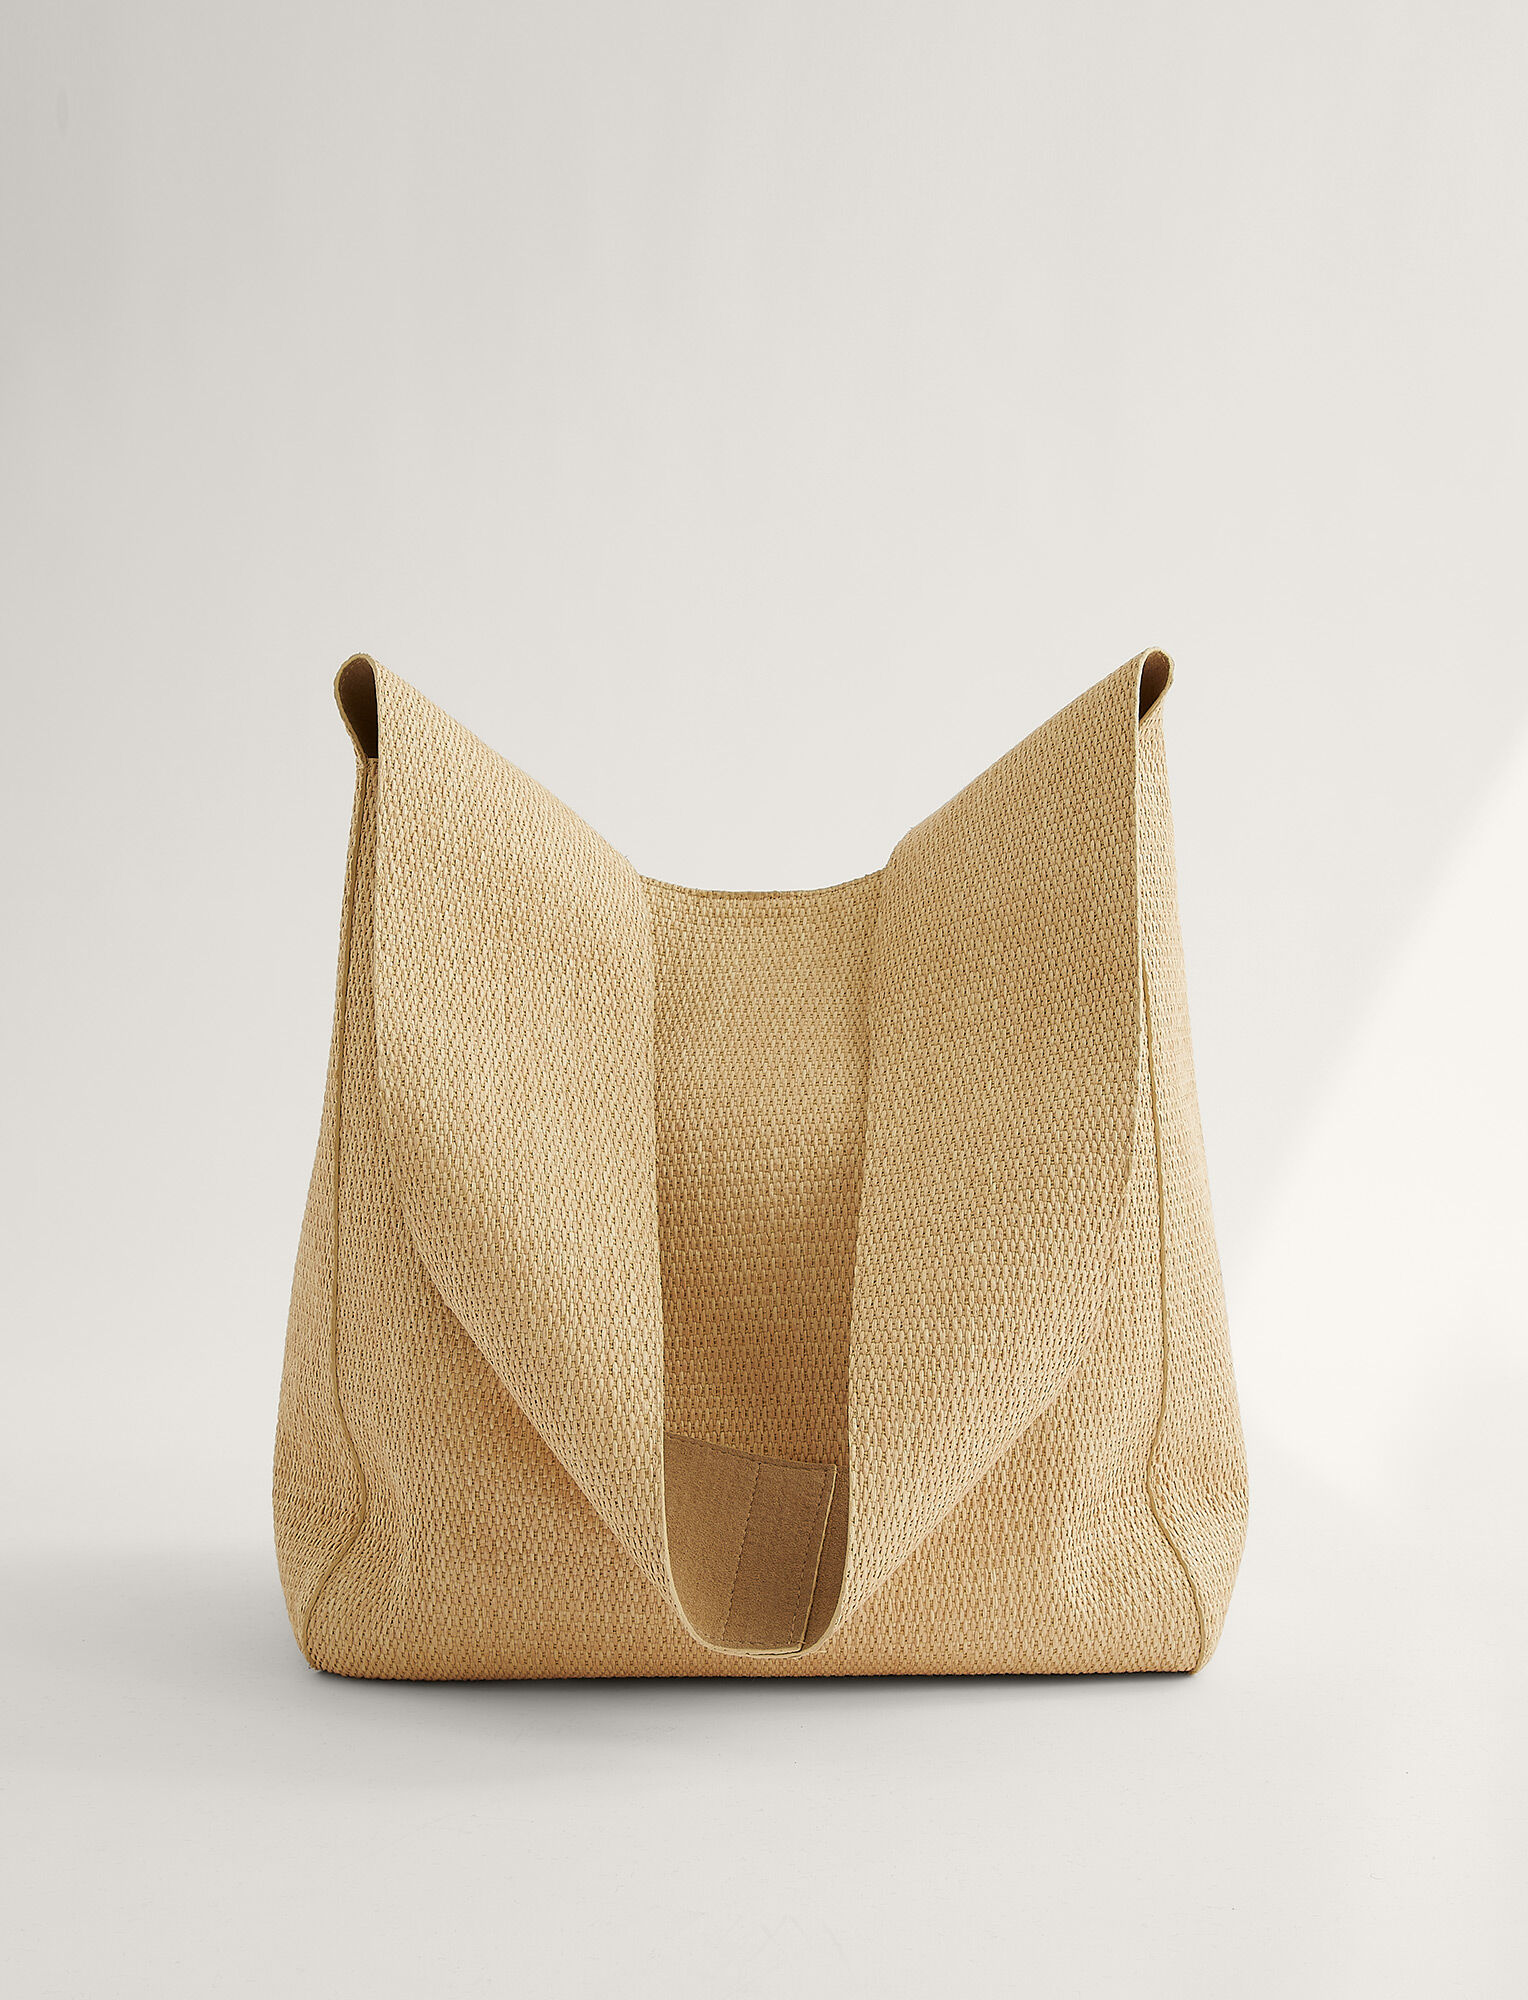 Joseph, Natural Fabric Slouch Bag, in NATURAL